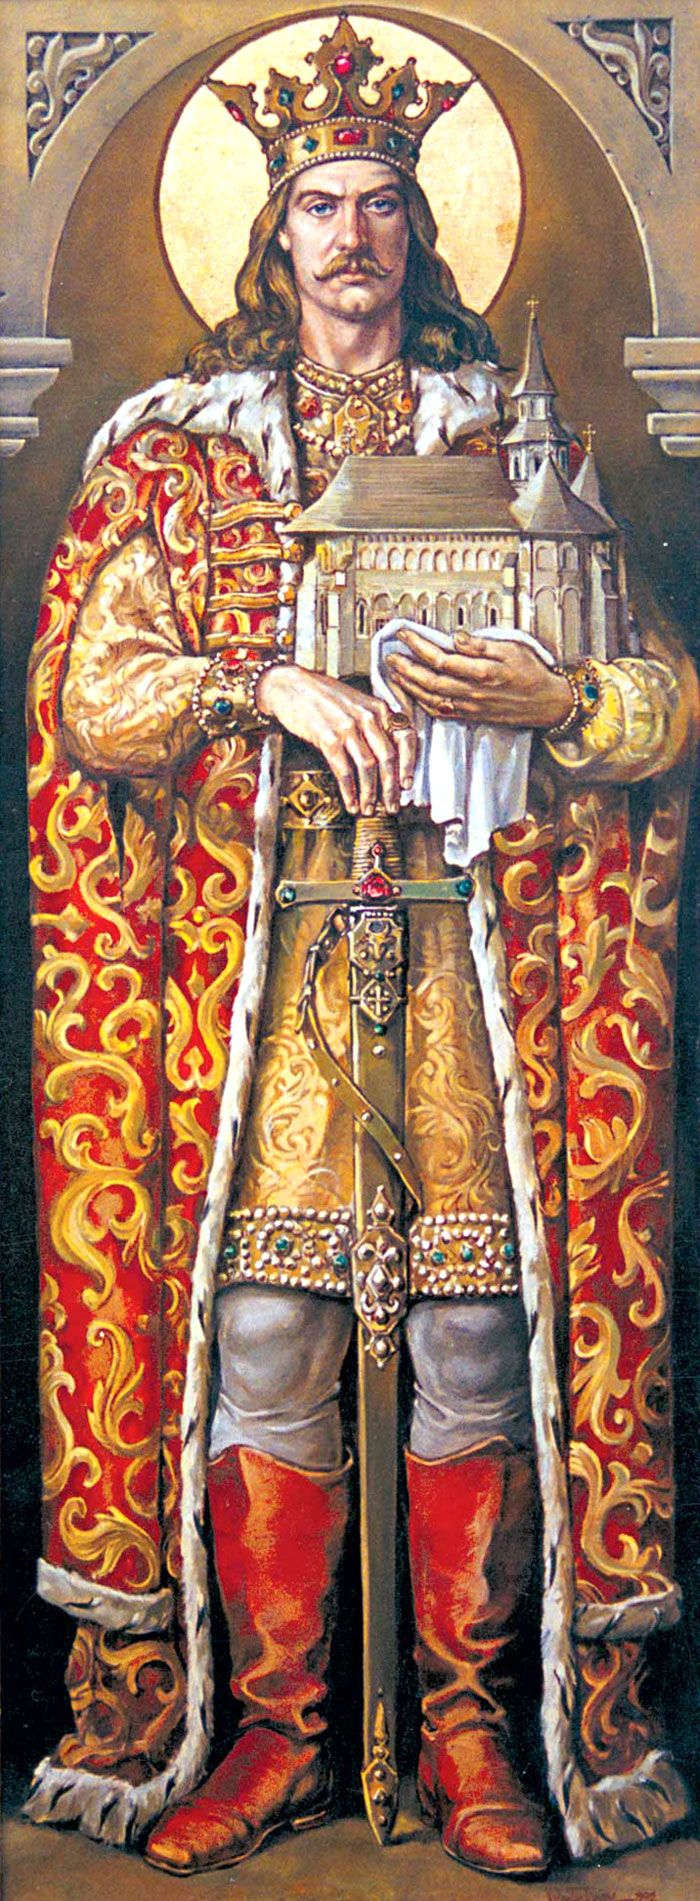 Prince Stephen III The Great (c 1435-2 Jul 1504 age 69) Romania by Unknown Artist, father of Princess Elena (Olena-Ilincu) Stepanovna (?-18 Jan 1505) Romania (wife of Grand Prince Ivan The Young  Ivanovich Rurik (Ioann Ioannovich-Ivan Molodoy) (15 Feb 1458-6 Mar 1490) Russia).